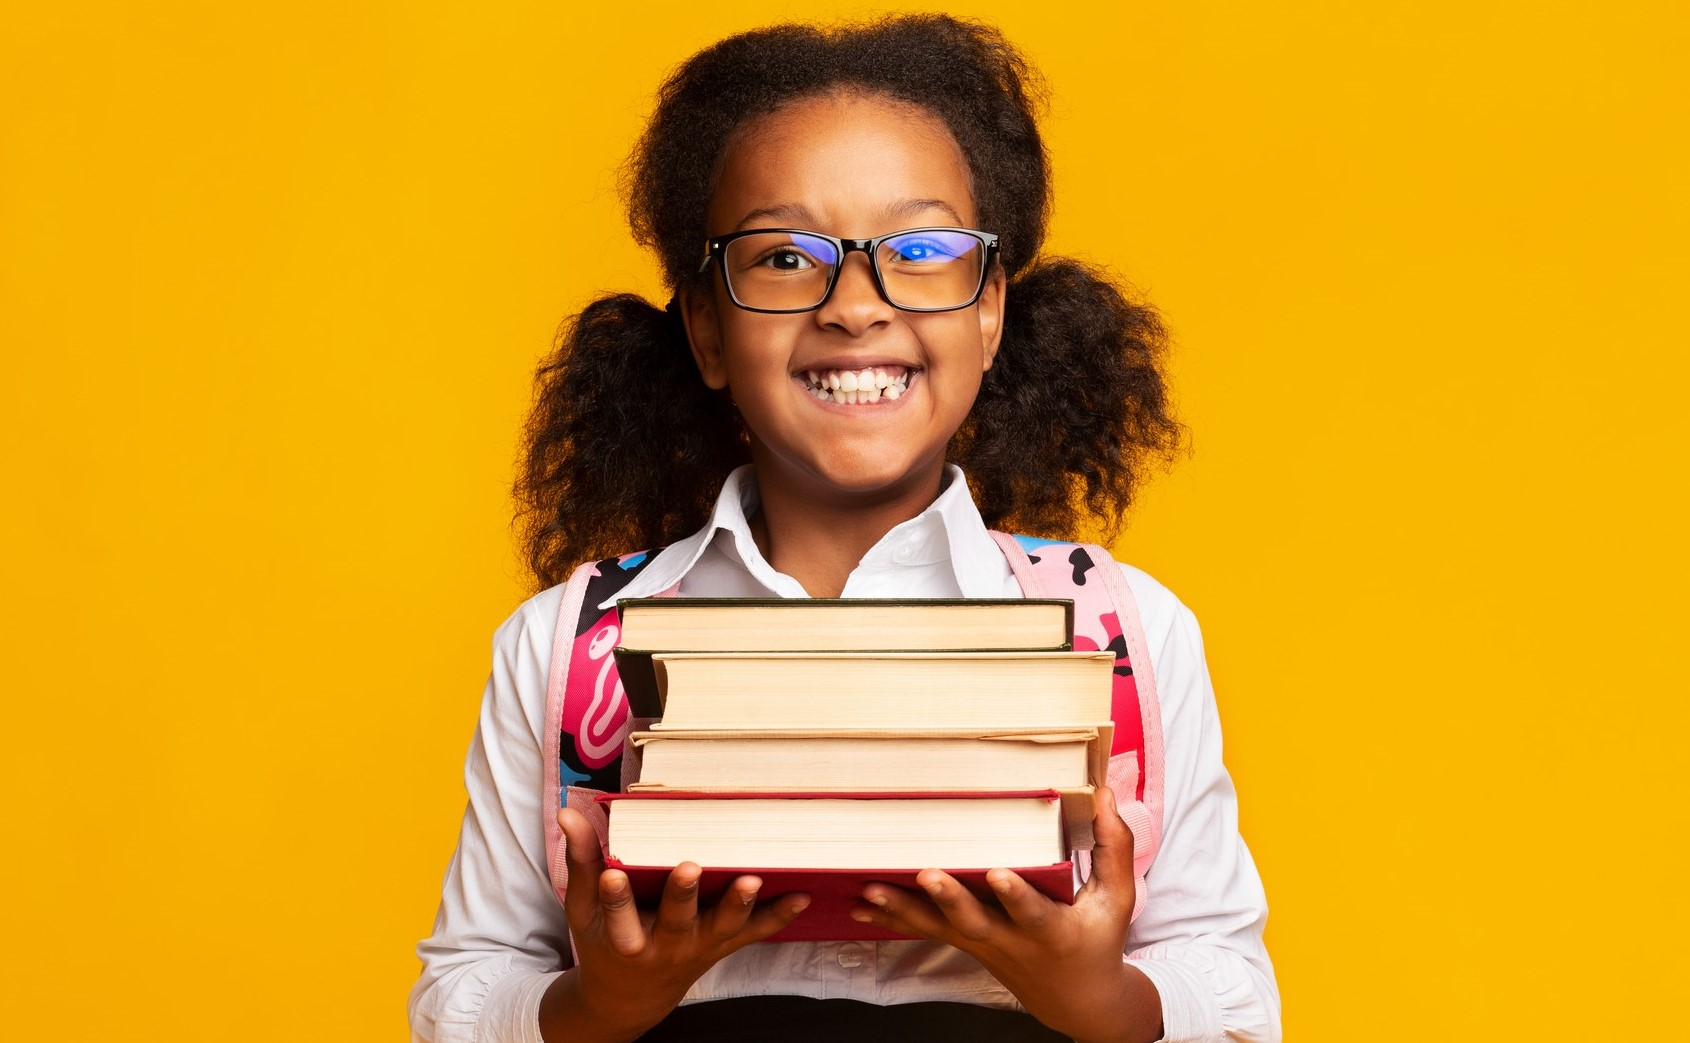 girl-with-books